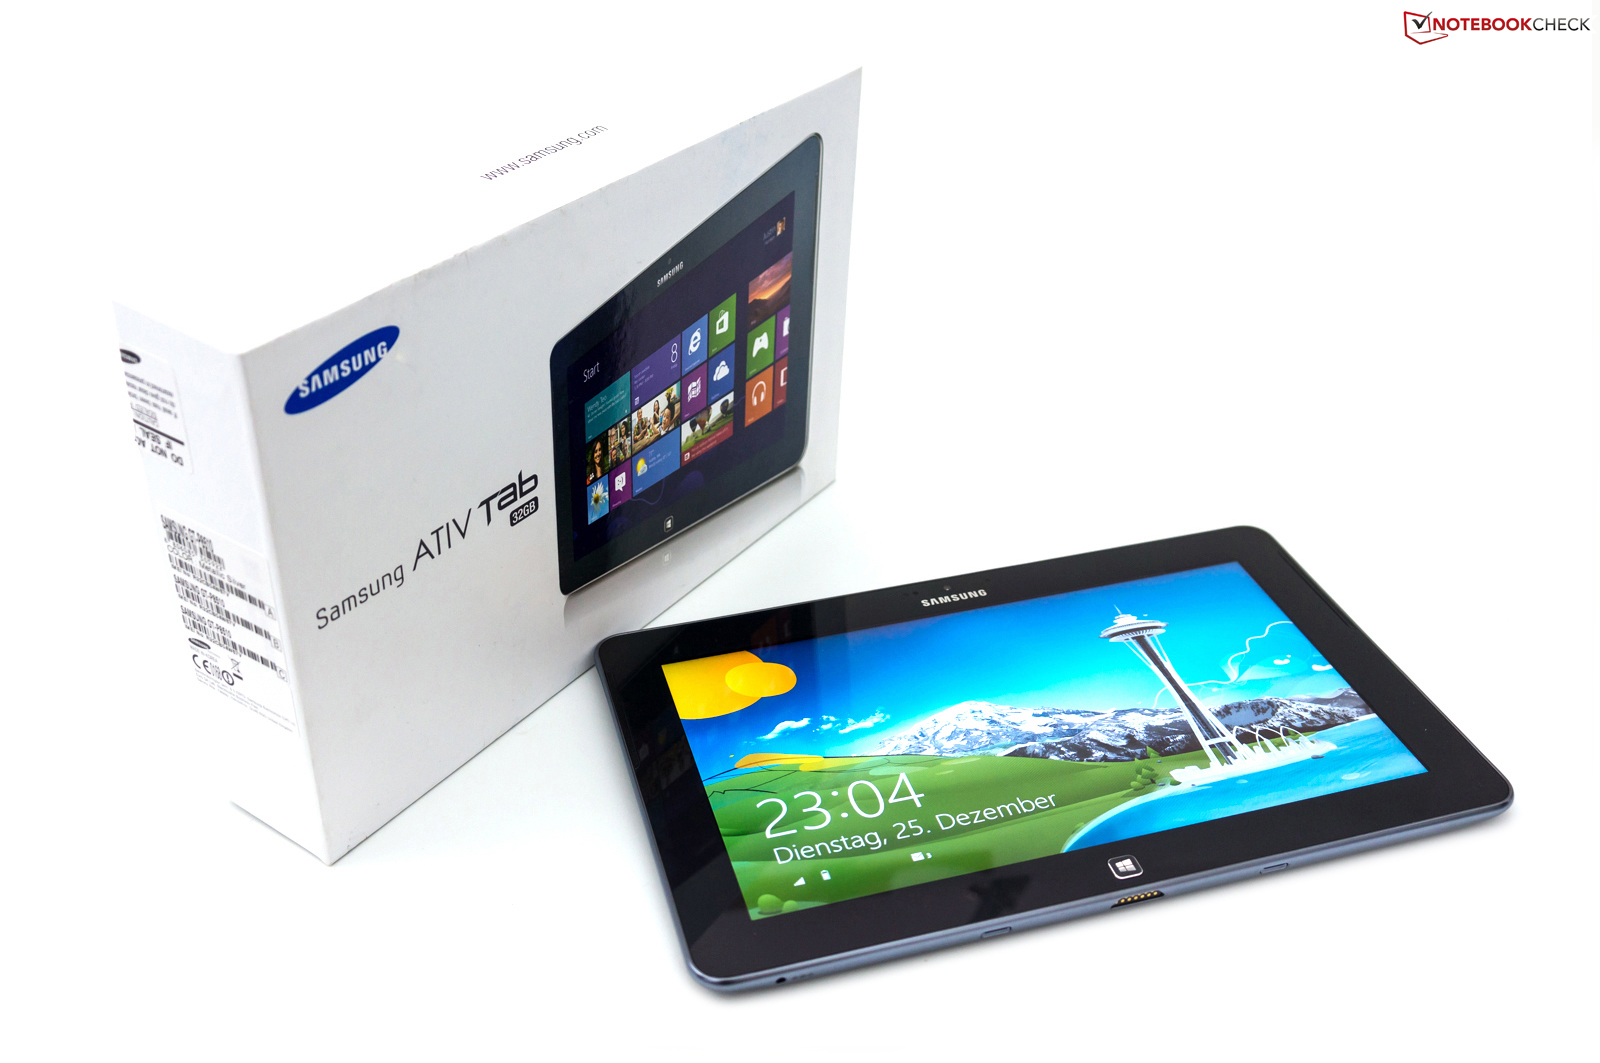 Review Samsung ATIV Tab GT-P8510 Tablet - Notebookcheck